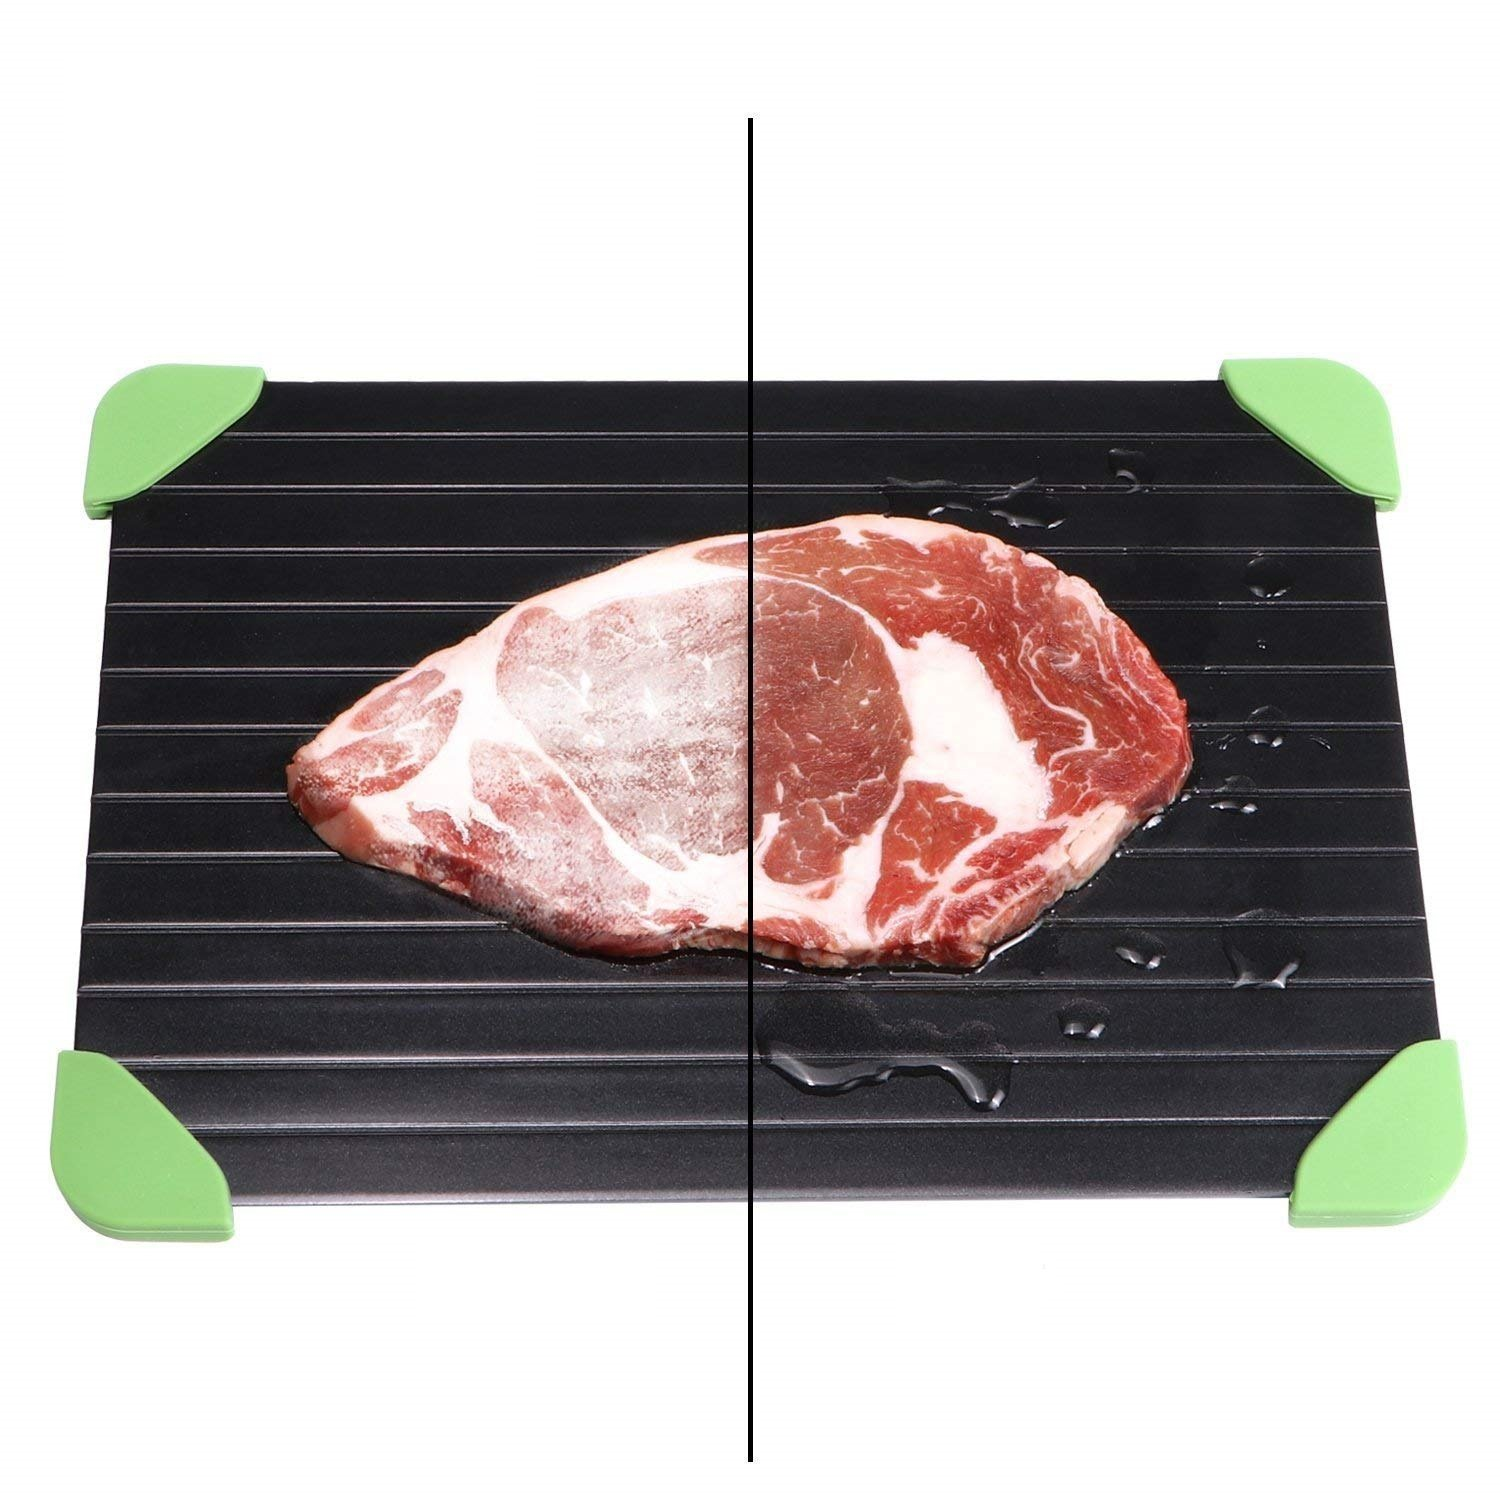 Quick Thaw Defrost Tray for Meat with Green Silicone Corner pad, Magic Thaws Frozen Food No Electricity Microwave Non-Slip SANLINKEE